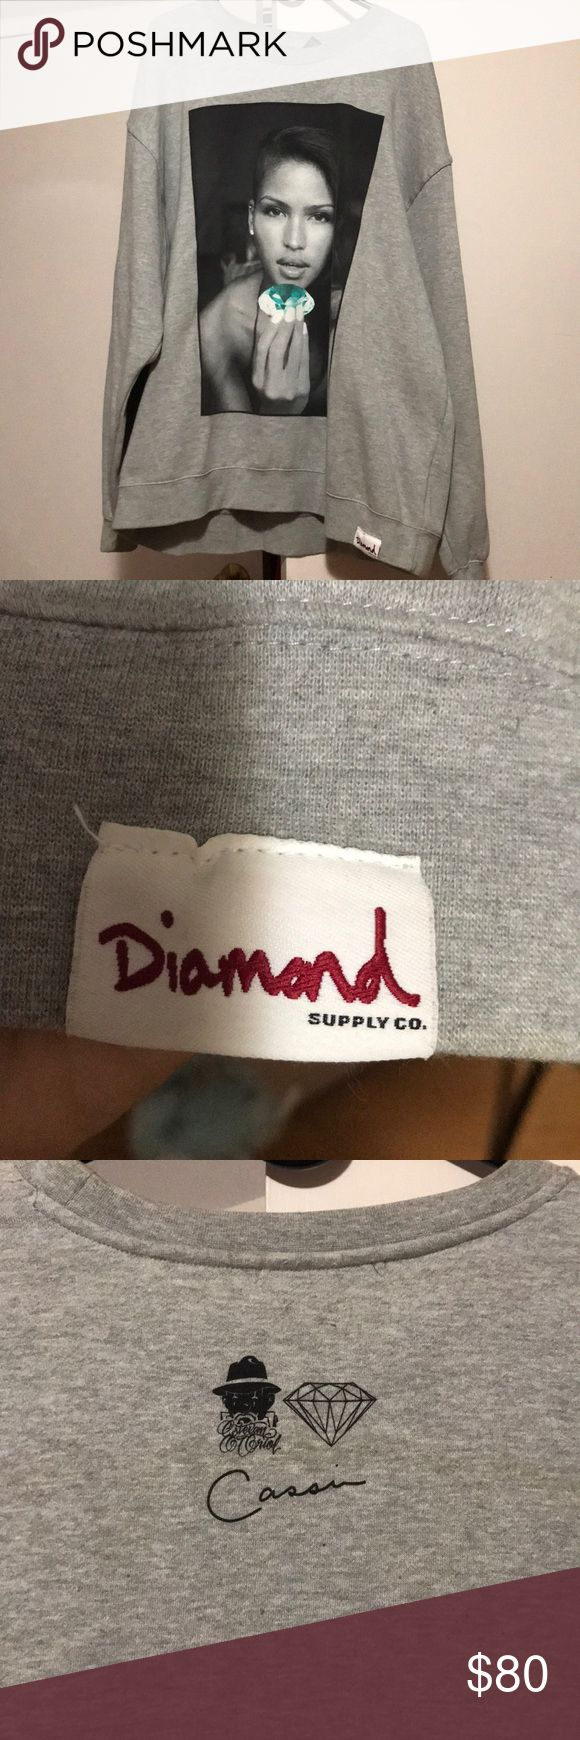 Diamond Supply Co Cassie Ventura X Estevan Oriol NWOT Limited edition sweatshirt featuring the 'Diamond Girl' Cassie Ventura  Ladies wear it as an oversized dress or fellas as a sweatshirt. Diamond Supply Co. Shirts Sweatshirts & Hoodies